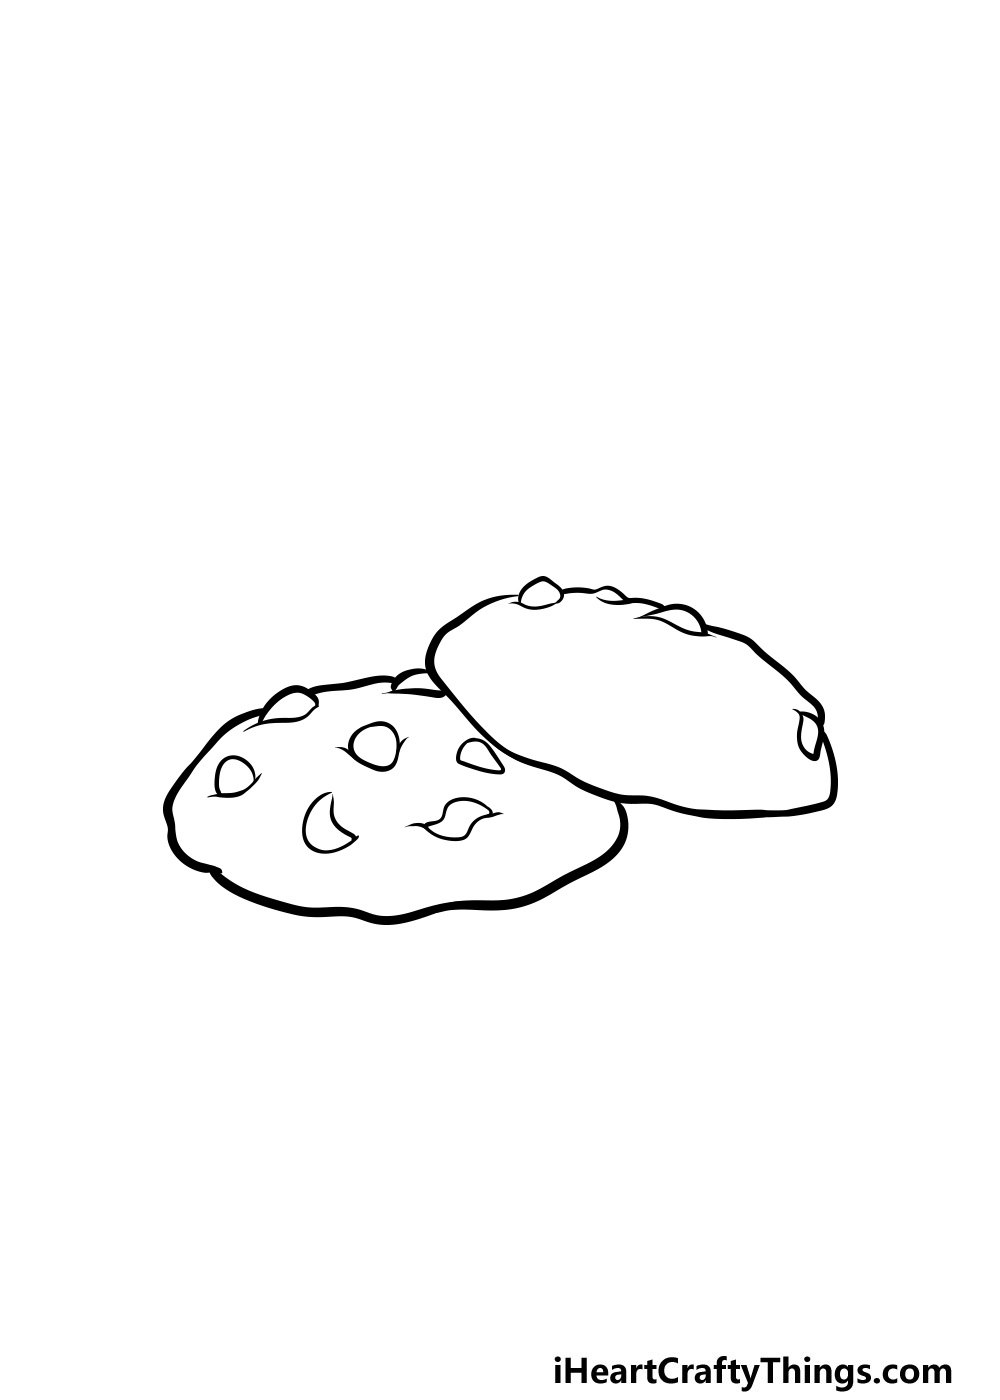 drawing a cookie step 3